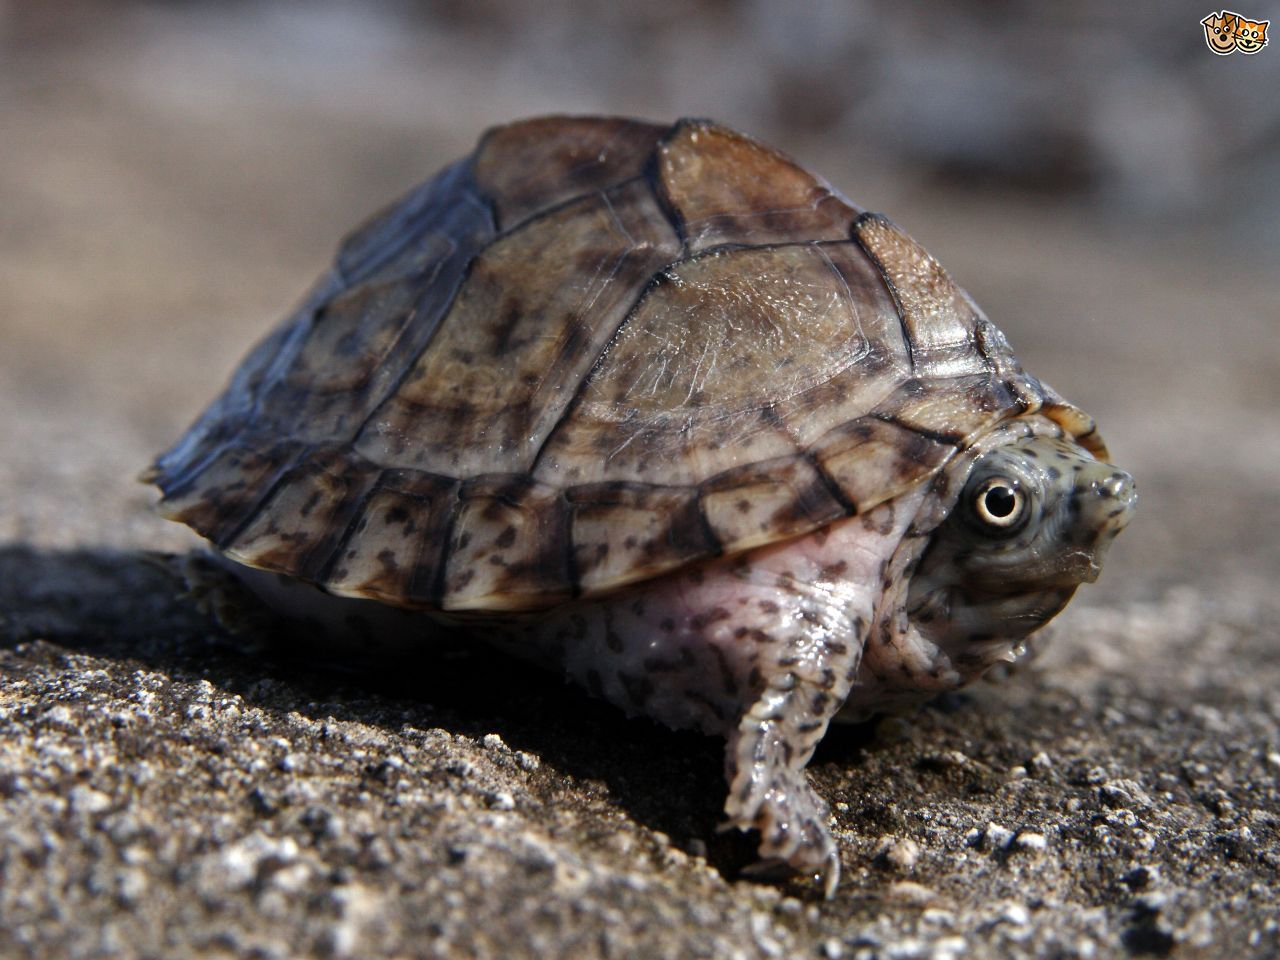 Musk Turtles The Biggest Attitude In A Little Turtle Pets4homes Musk Turtle Turtles For Sale Pet Turtle